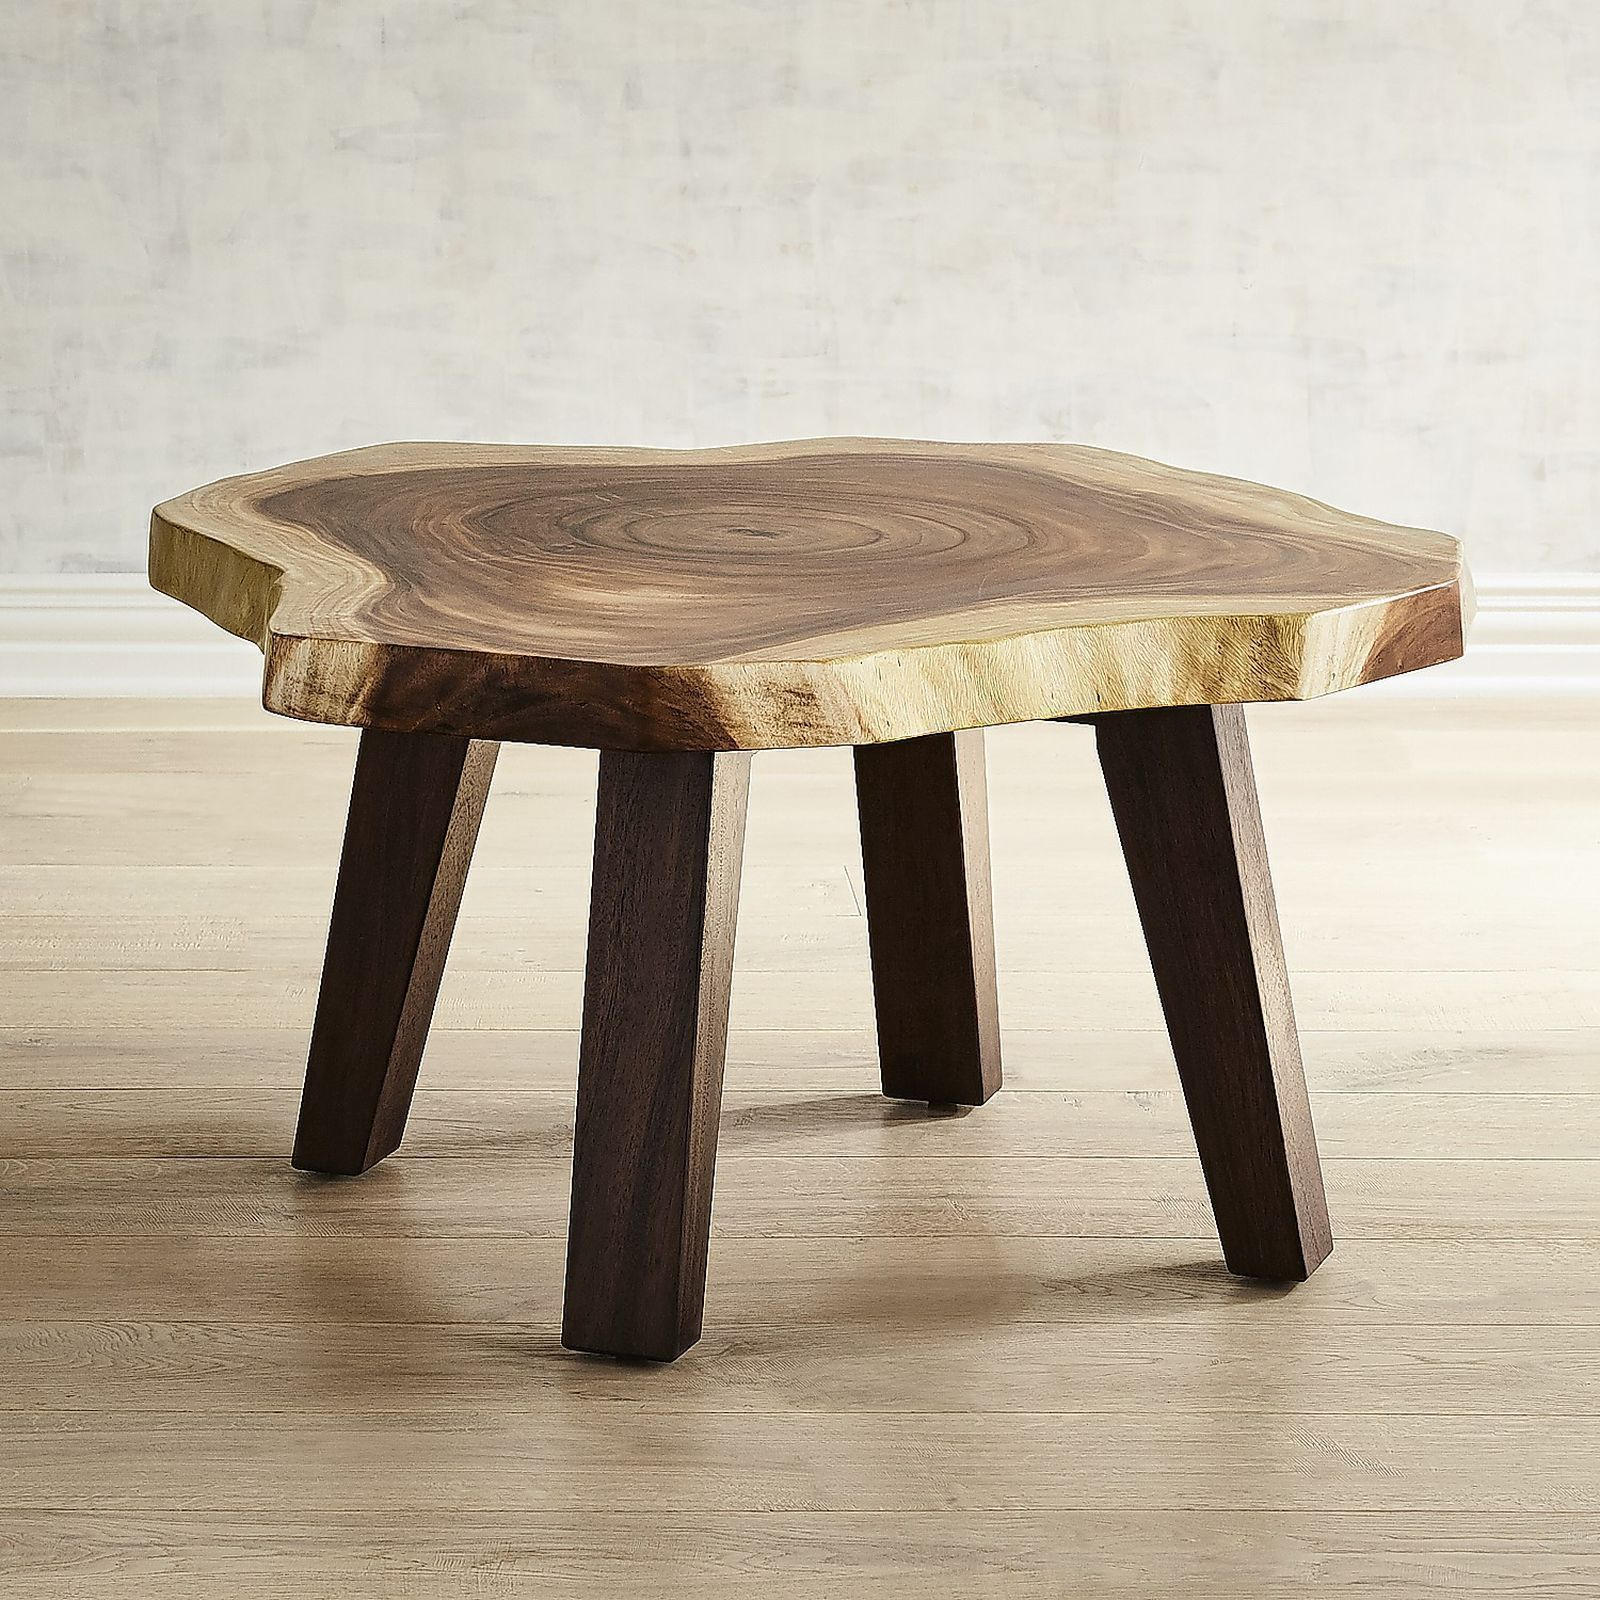 22 Modern Coffee Tables Designs Interesting Best Unique And Classy Log Coffee Table Coffee Table Coffee Table Plans [ 1600 x 1600 Pixel ]